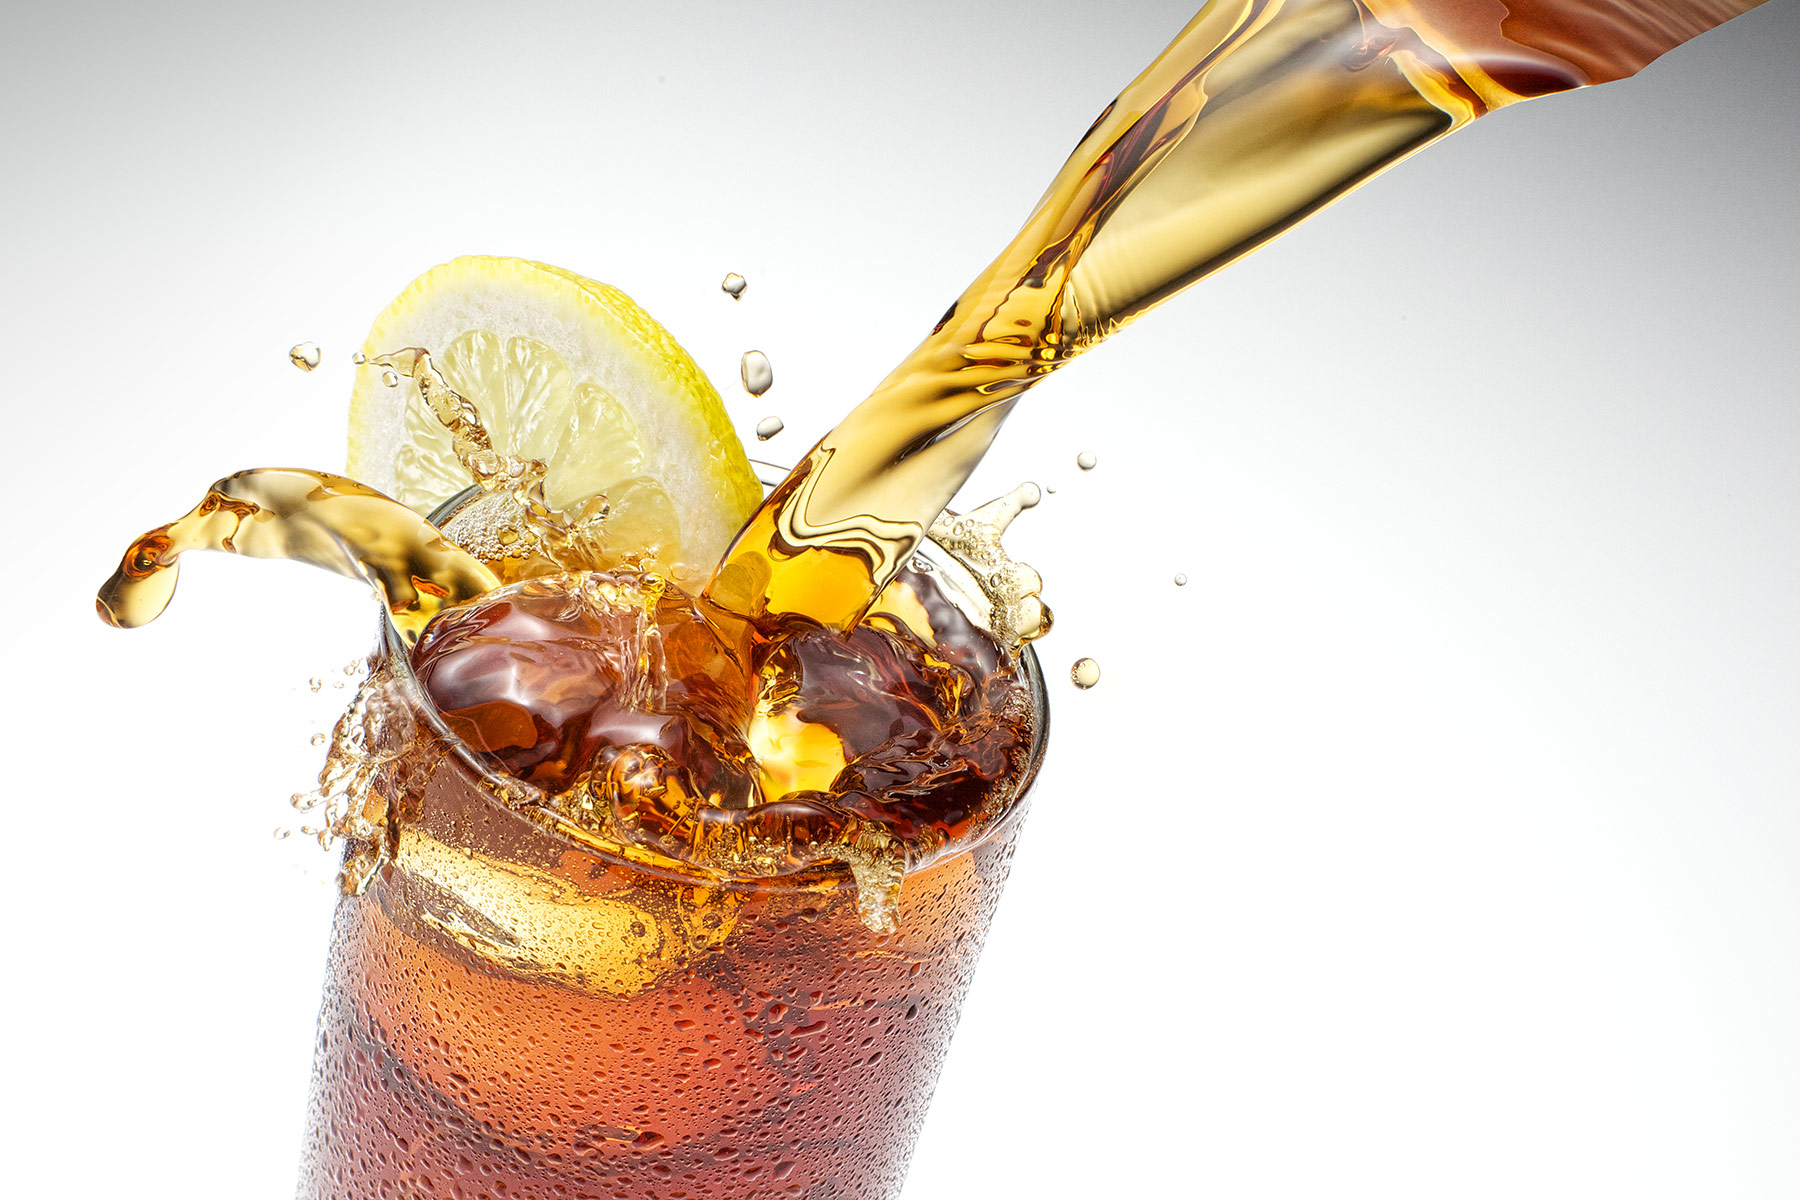 Iced tea pouring into glass | Dovis Bird Agency Reps